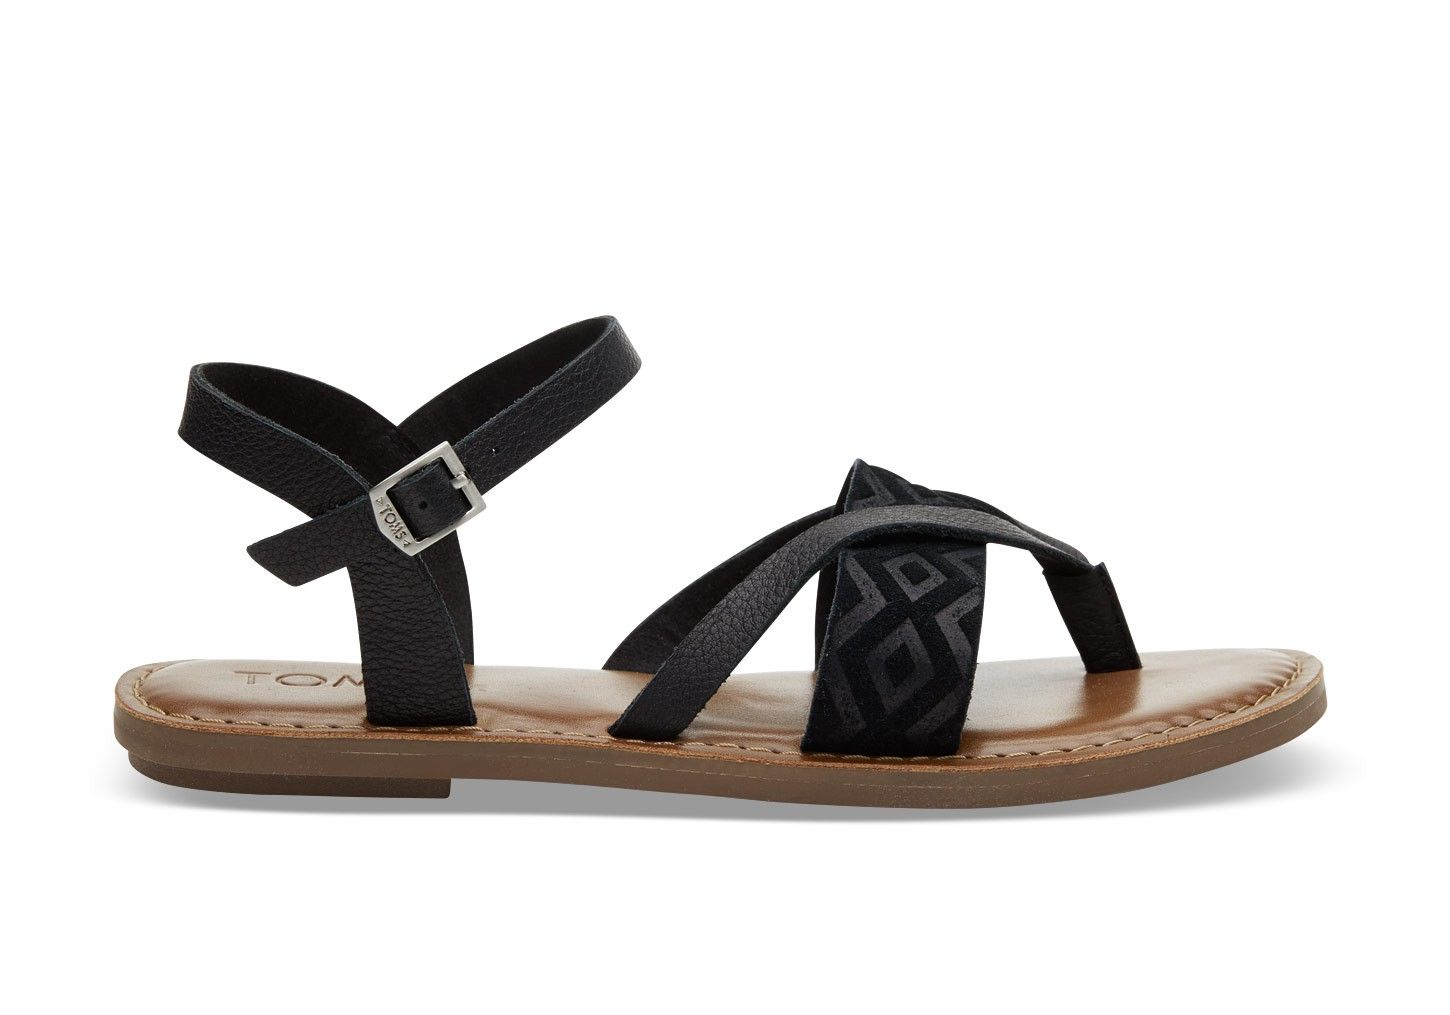 ddffa239274 TOMS TOMS Black Leather Embossed Women s Lexie Sandals.  toms  shoes  all